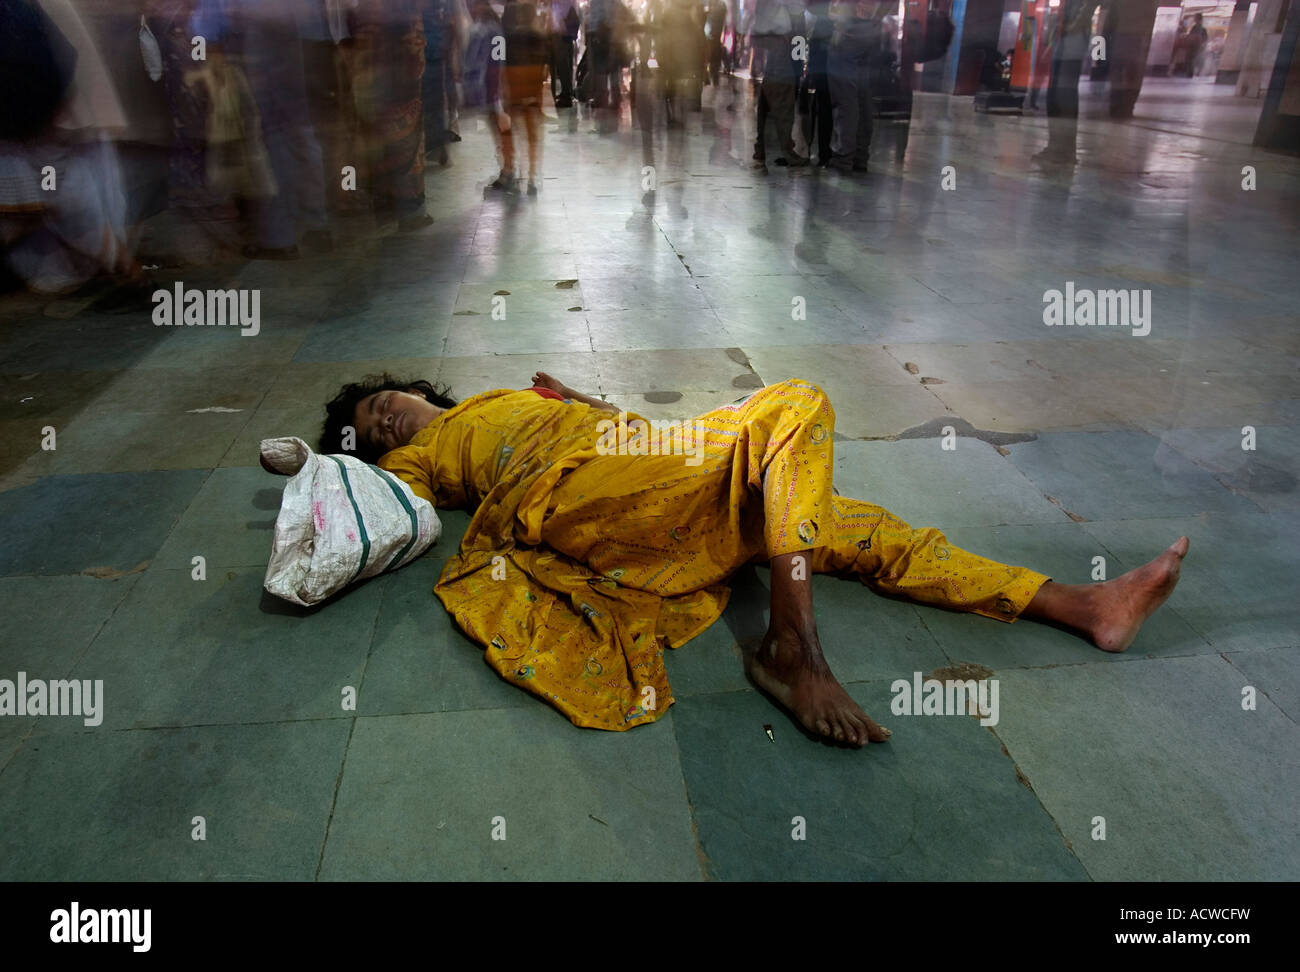 Dalit or untouchable sleeping exhausted in the floor of a train station Delhi India - Stock Image